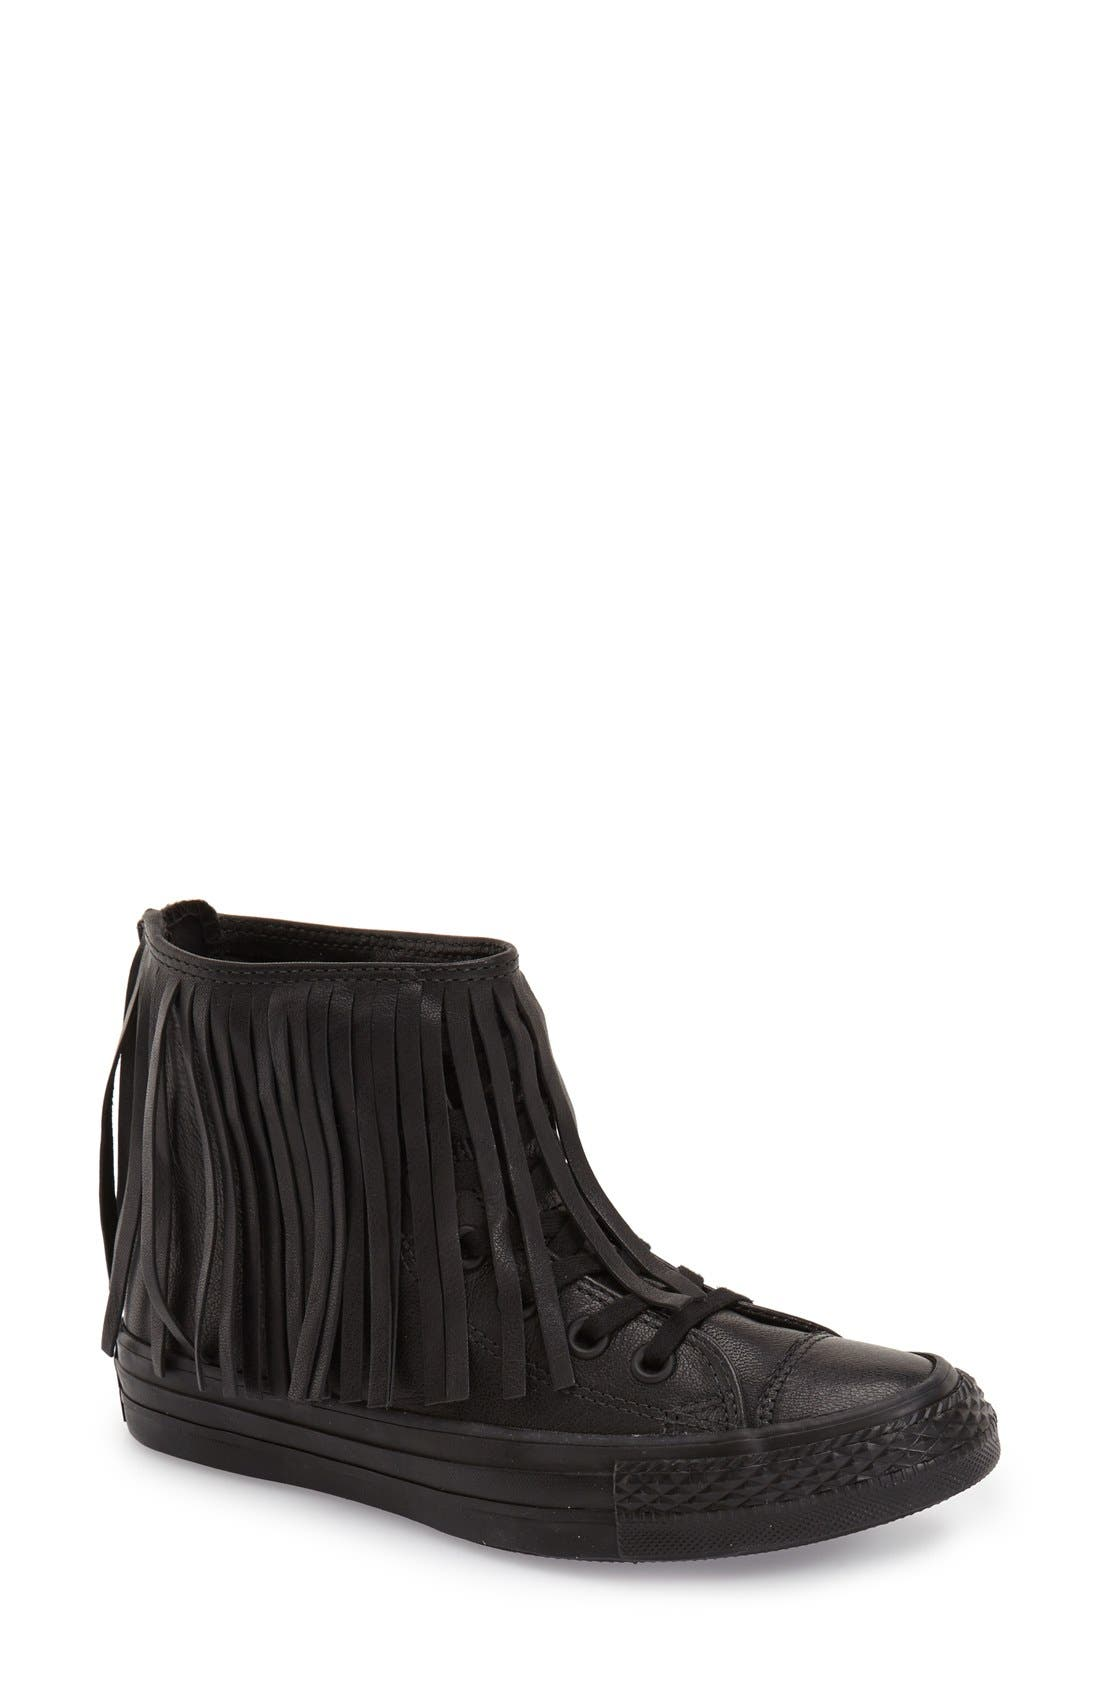 Main Image - Converse Chuck Taylor® All Star® Fringe Leather High Top Sneaker (Women)